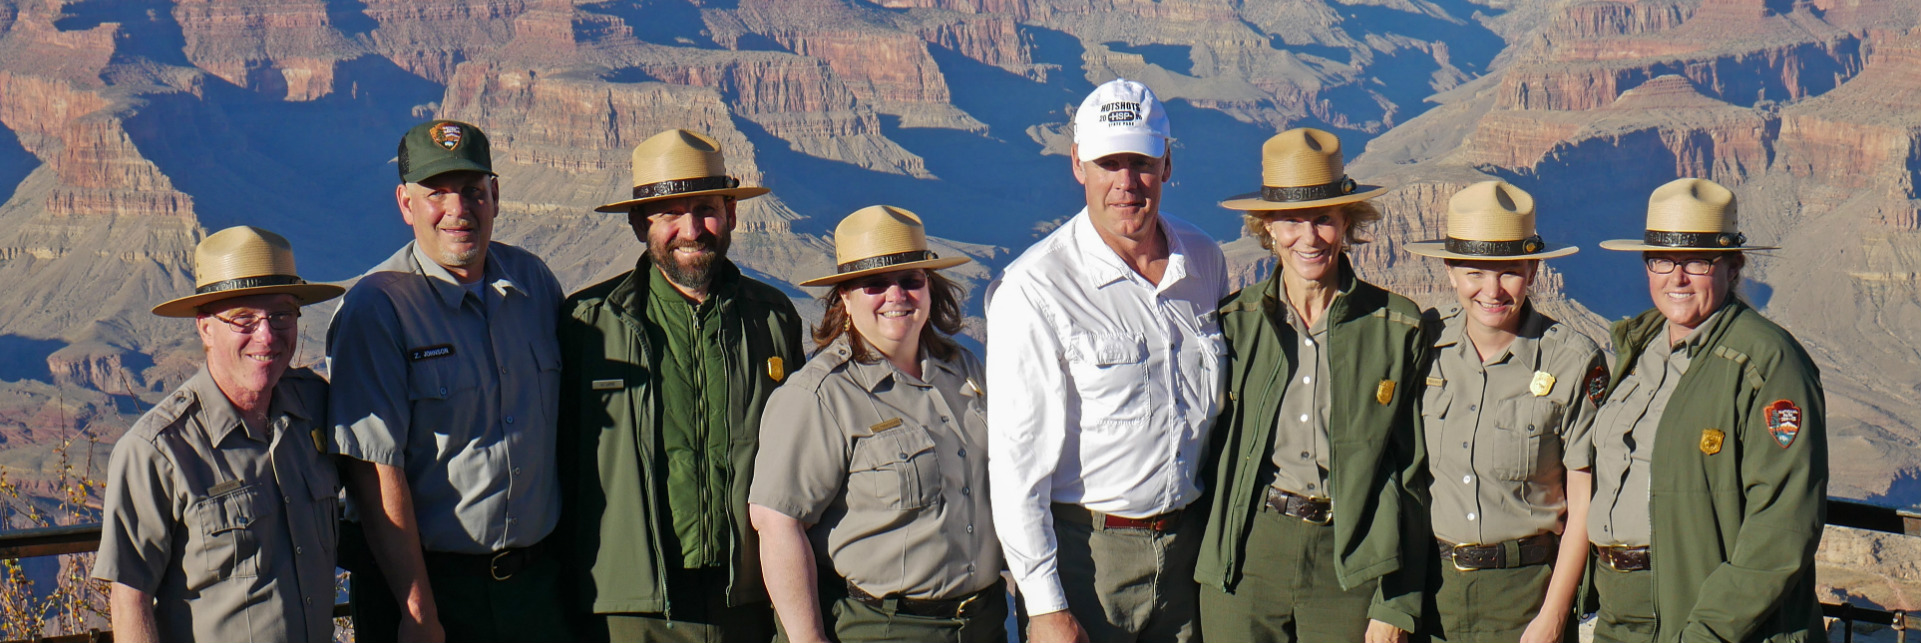 Secretary Zinke poses with a small group of men and women in National Park Service uniforms in front of the Grand Canyon.